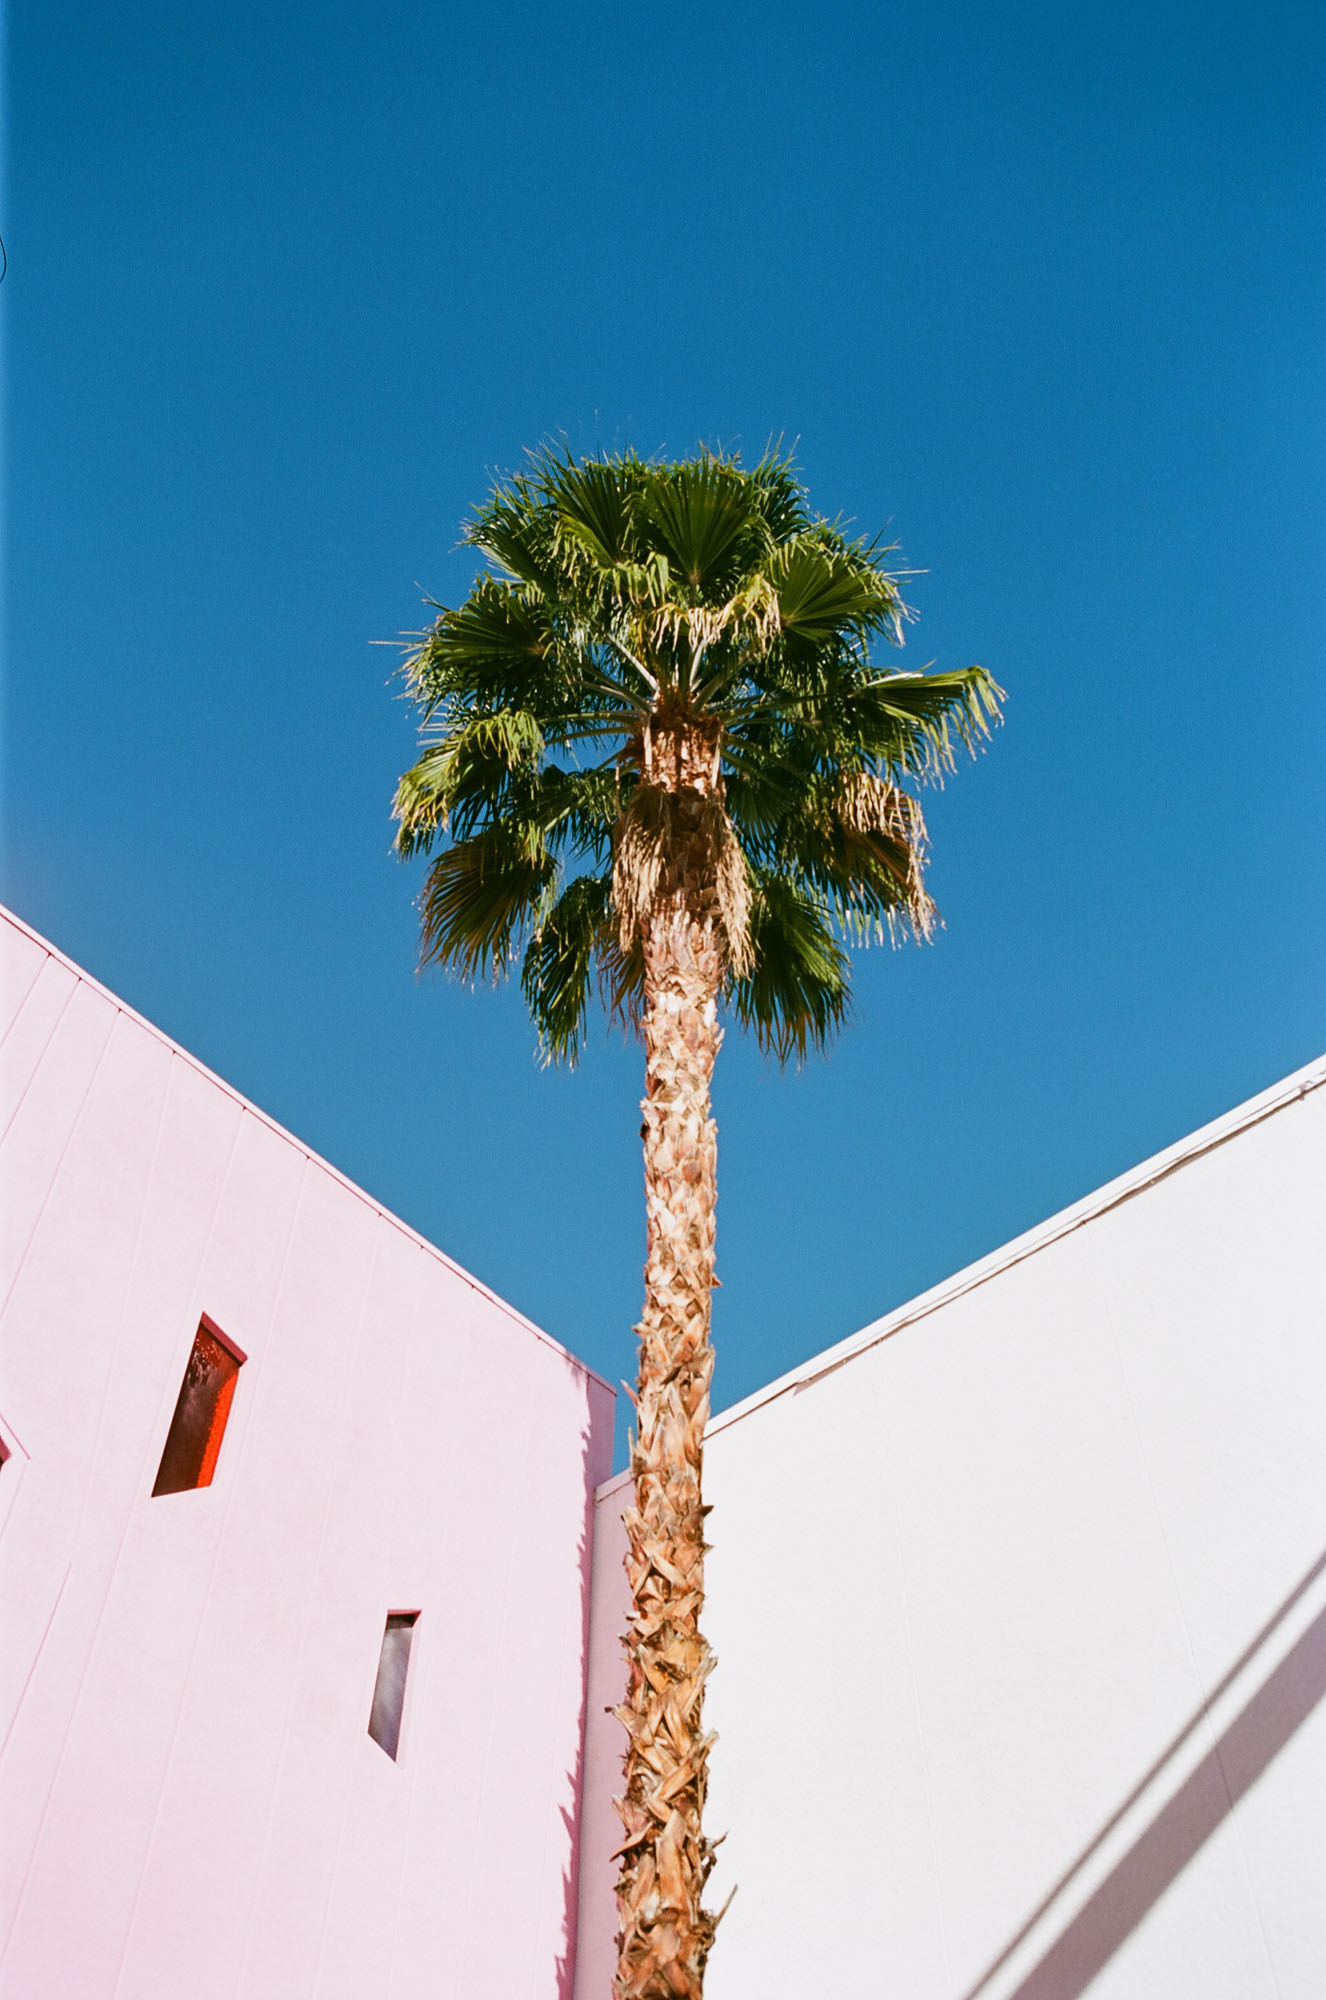 the-saguaro-hotel-palm-springs-california-film-photography-travel-photographer-007